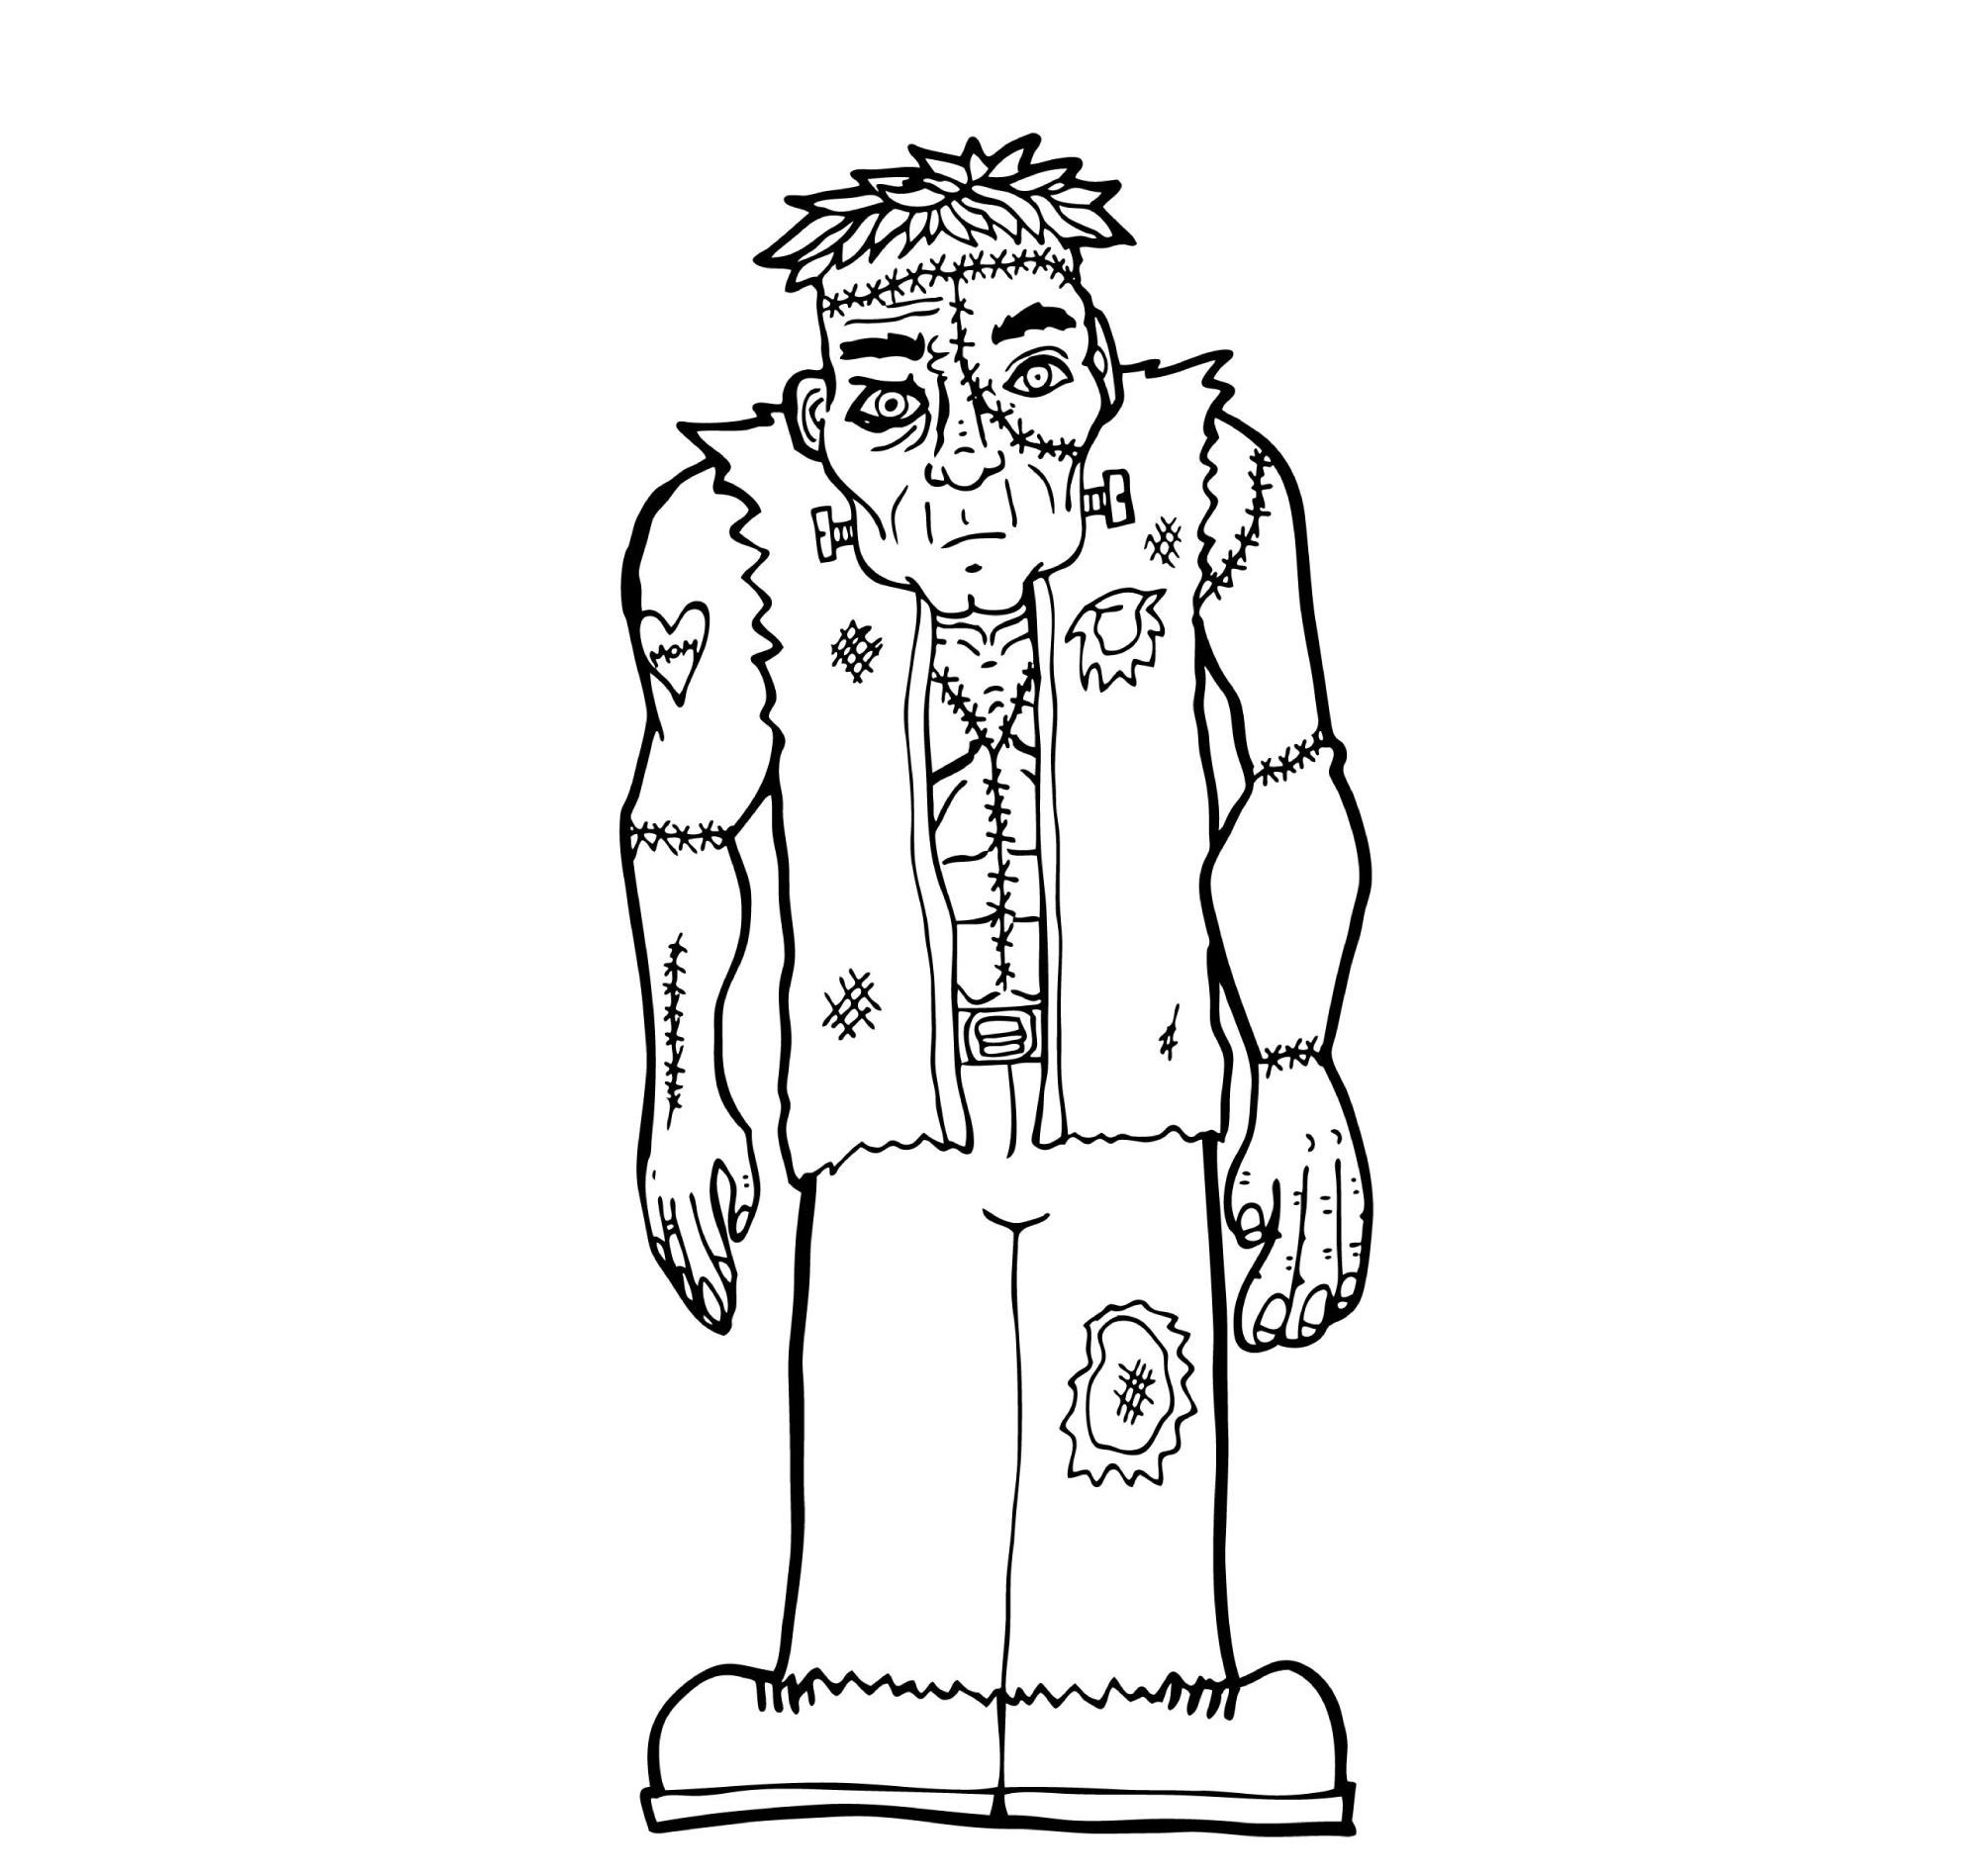 Frankenstein S Monsters Coloring Pages For Kids Cz3 Printable Monsters Coloring Pages For Kids